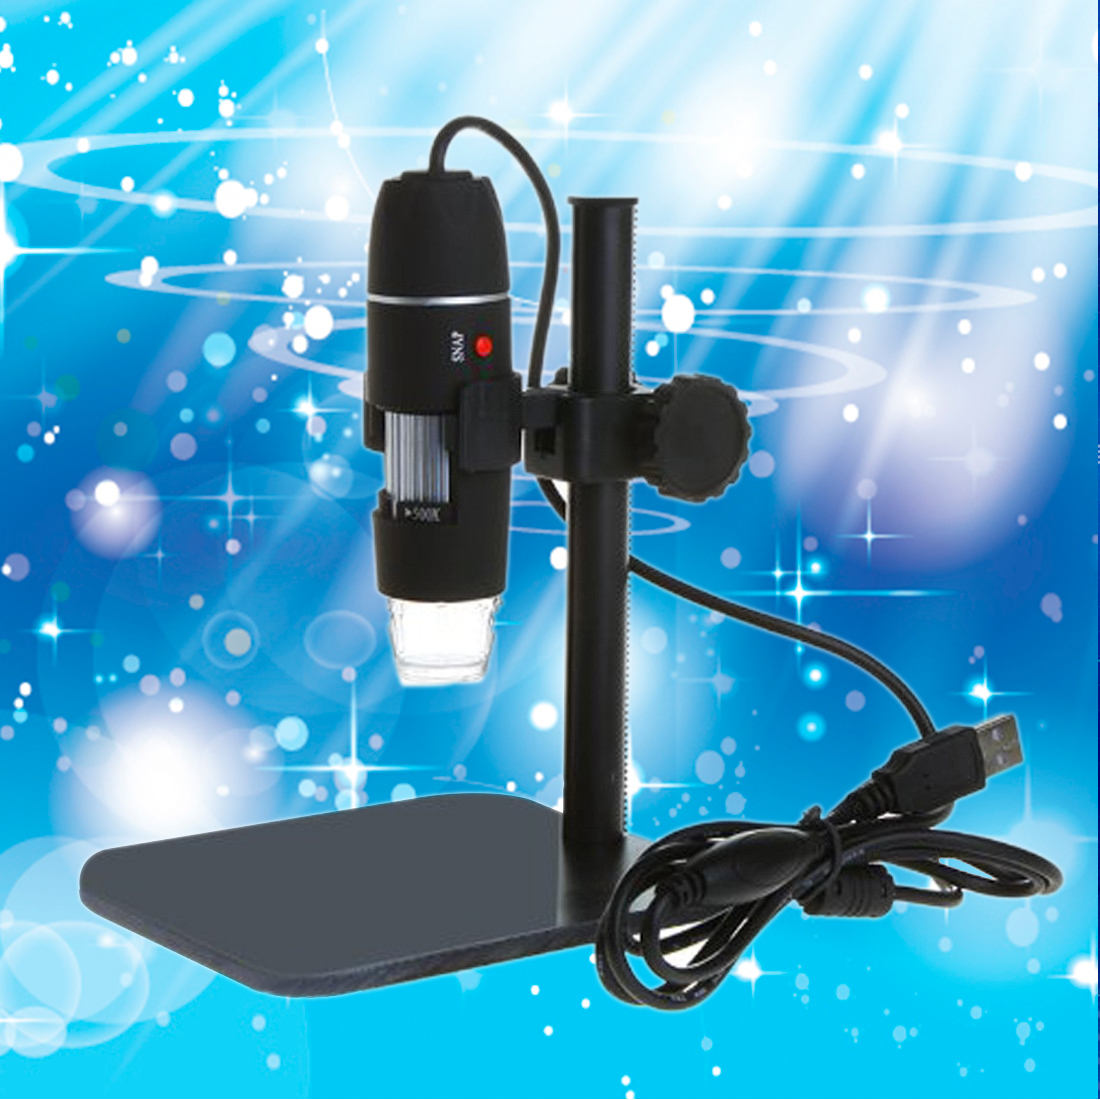 Practical Electronics 5MP USB 8 LED Digital Camera Microscope Endoscope Magnifier 50X 500X Magnification Measure in Microscopes from Tools